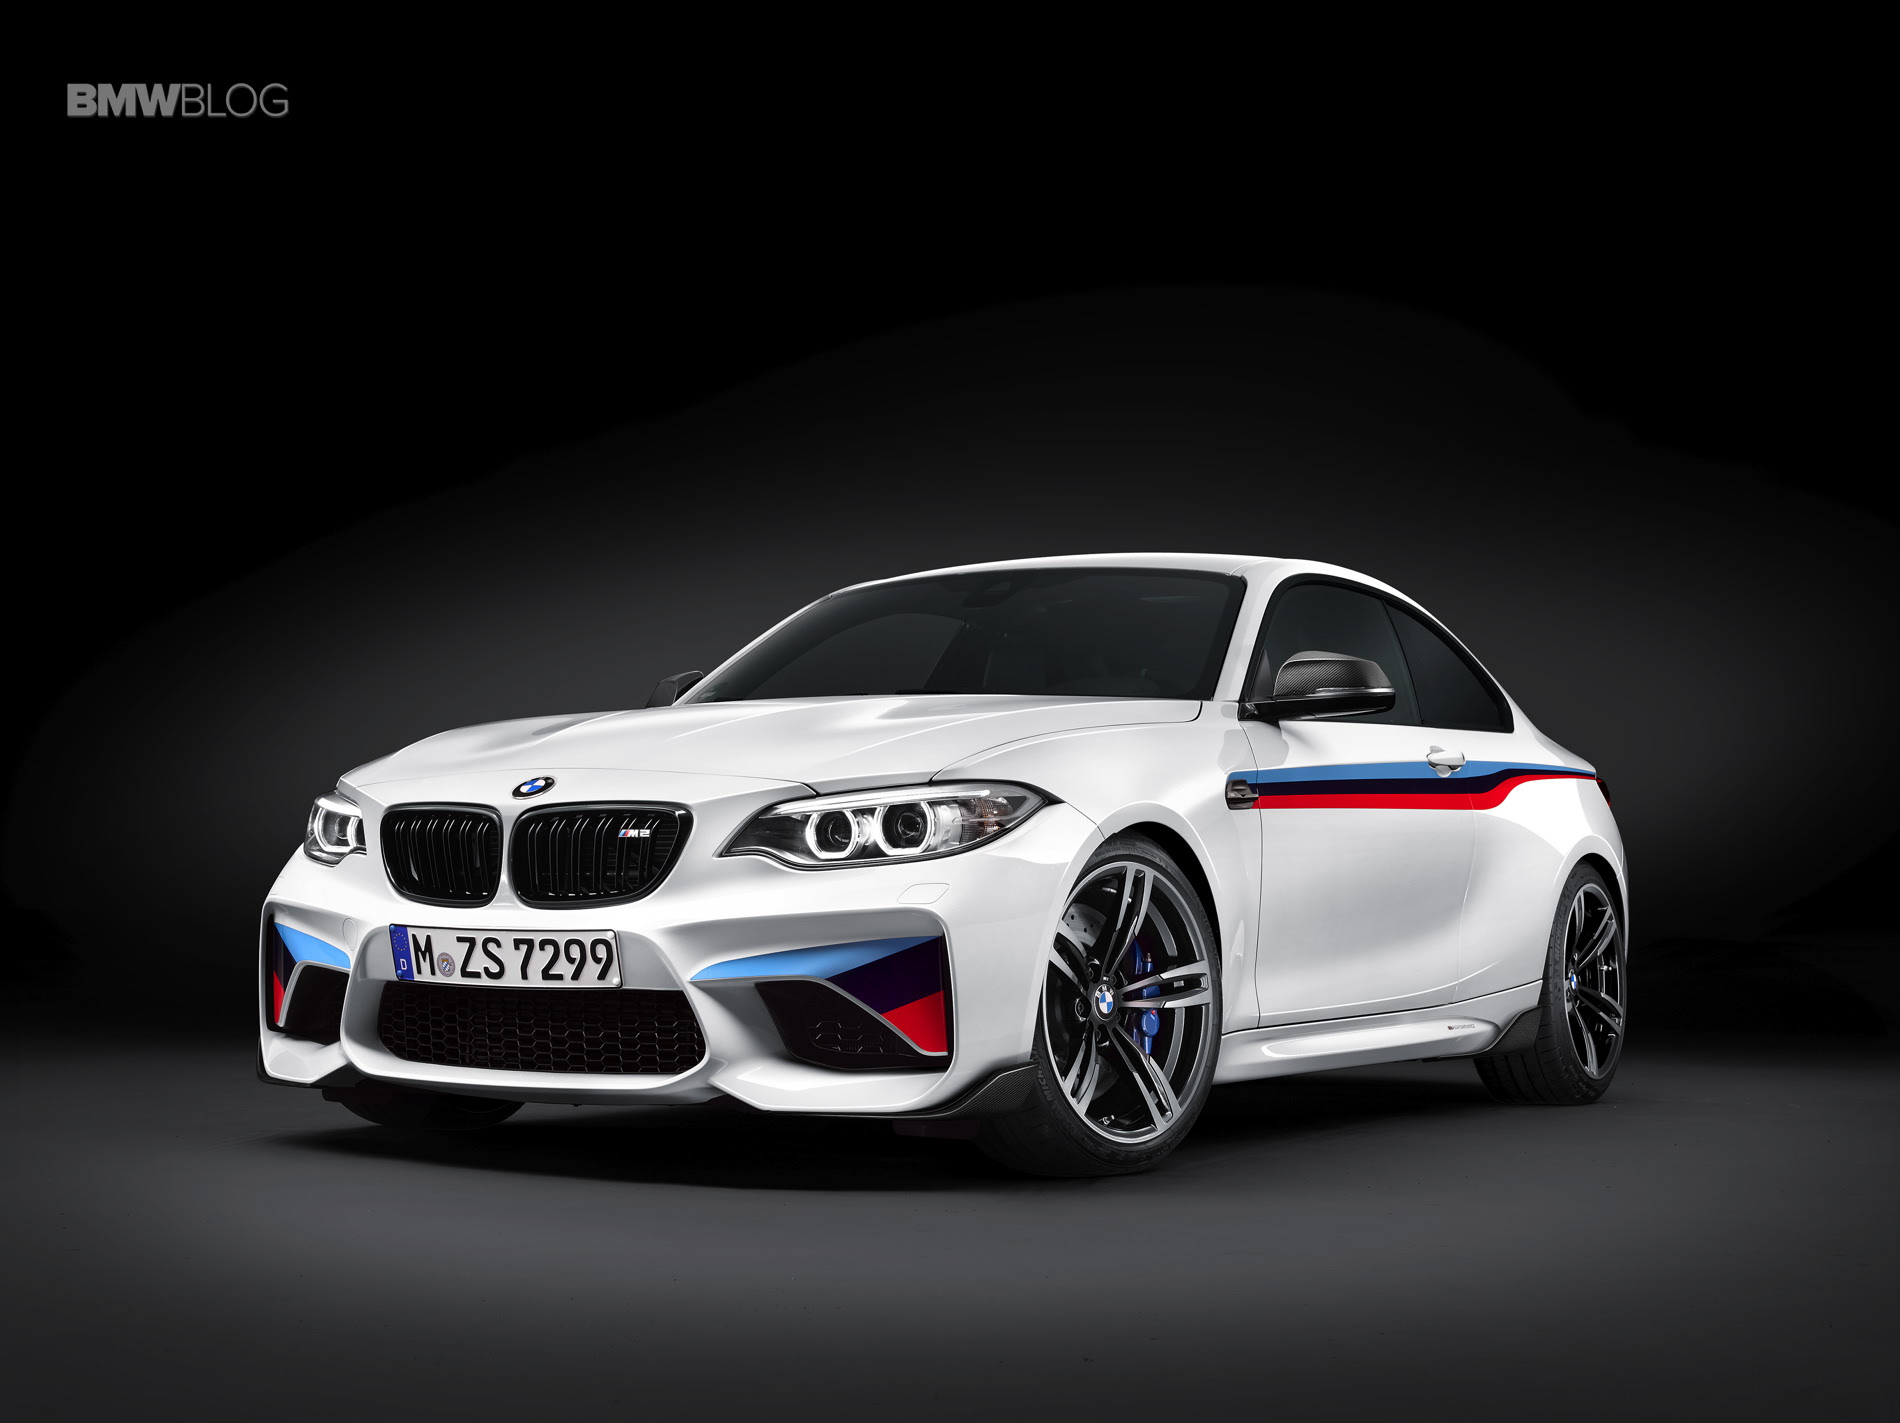 Bring the racetrack to the road. BMW M Performance Parts for M2, M3 and M4